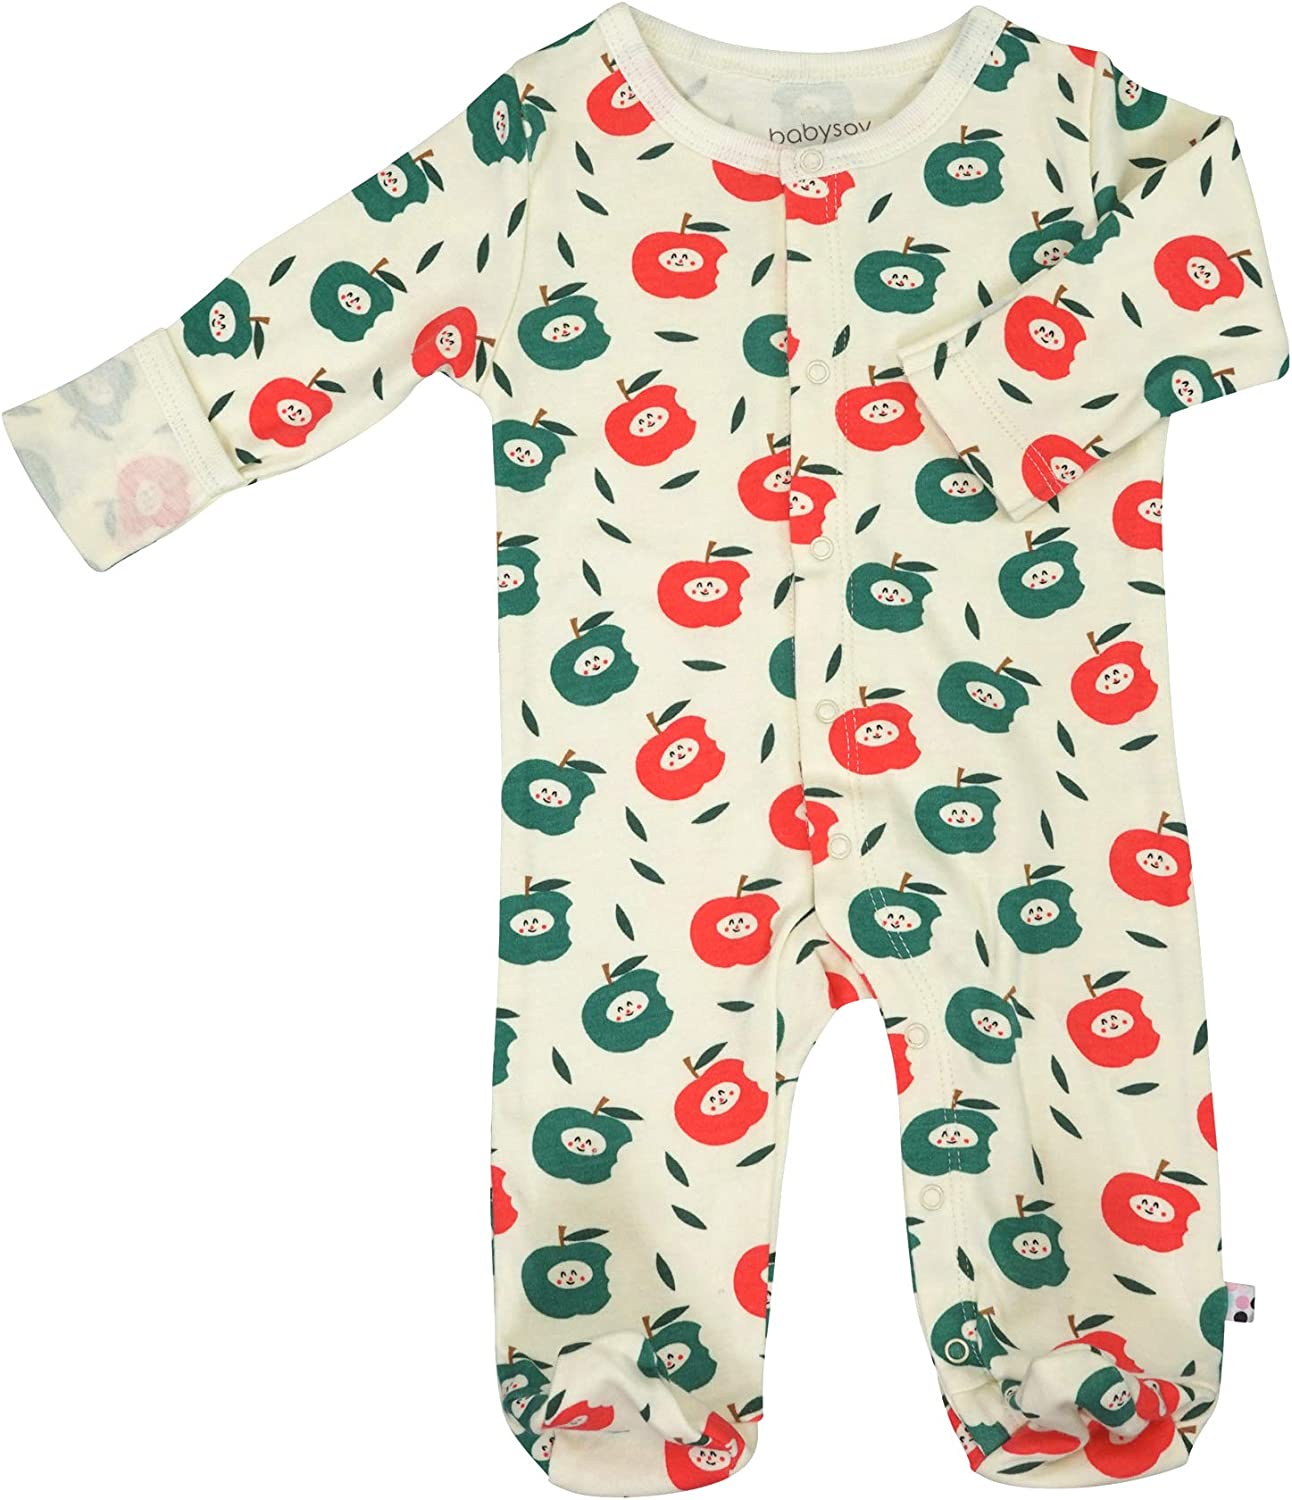 Babysoy Long Sleeve Soy Footie PJS - Snap One-Piece Sleeper